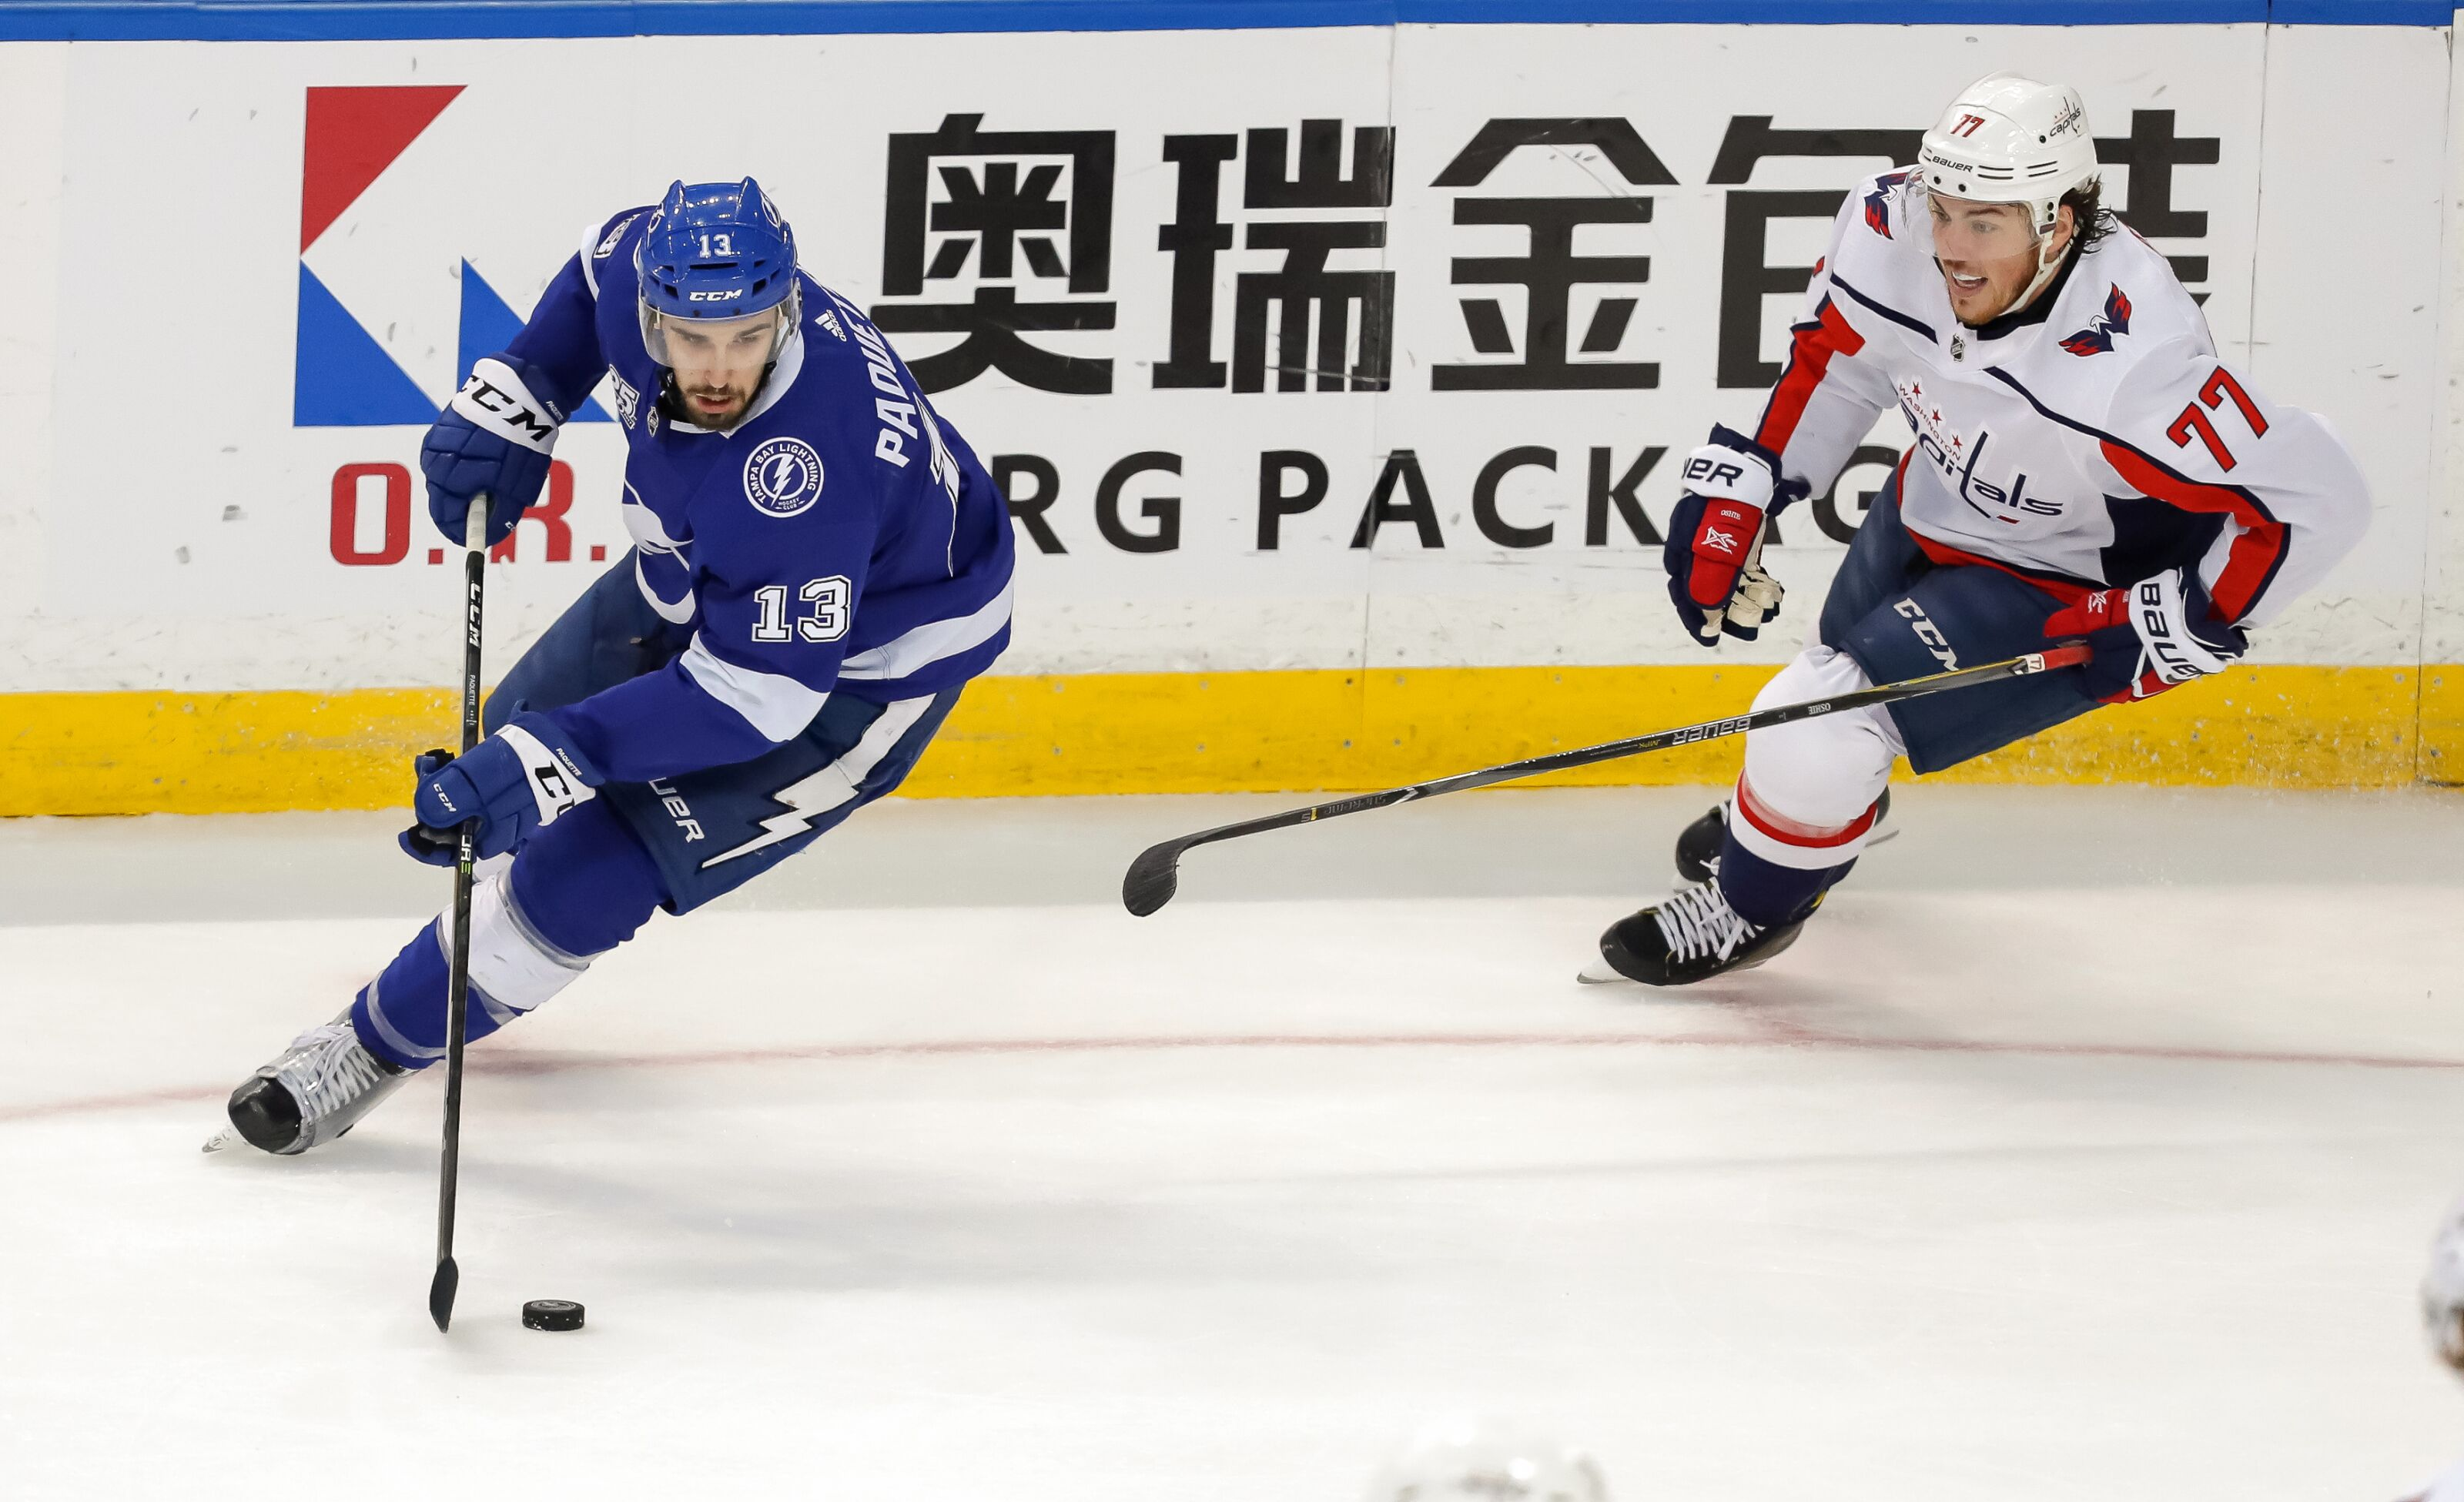 Bolts seek revenge tonight in Eastern Conference Final rematch vs Capitals ebf5ed916c1a